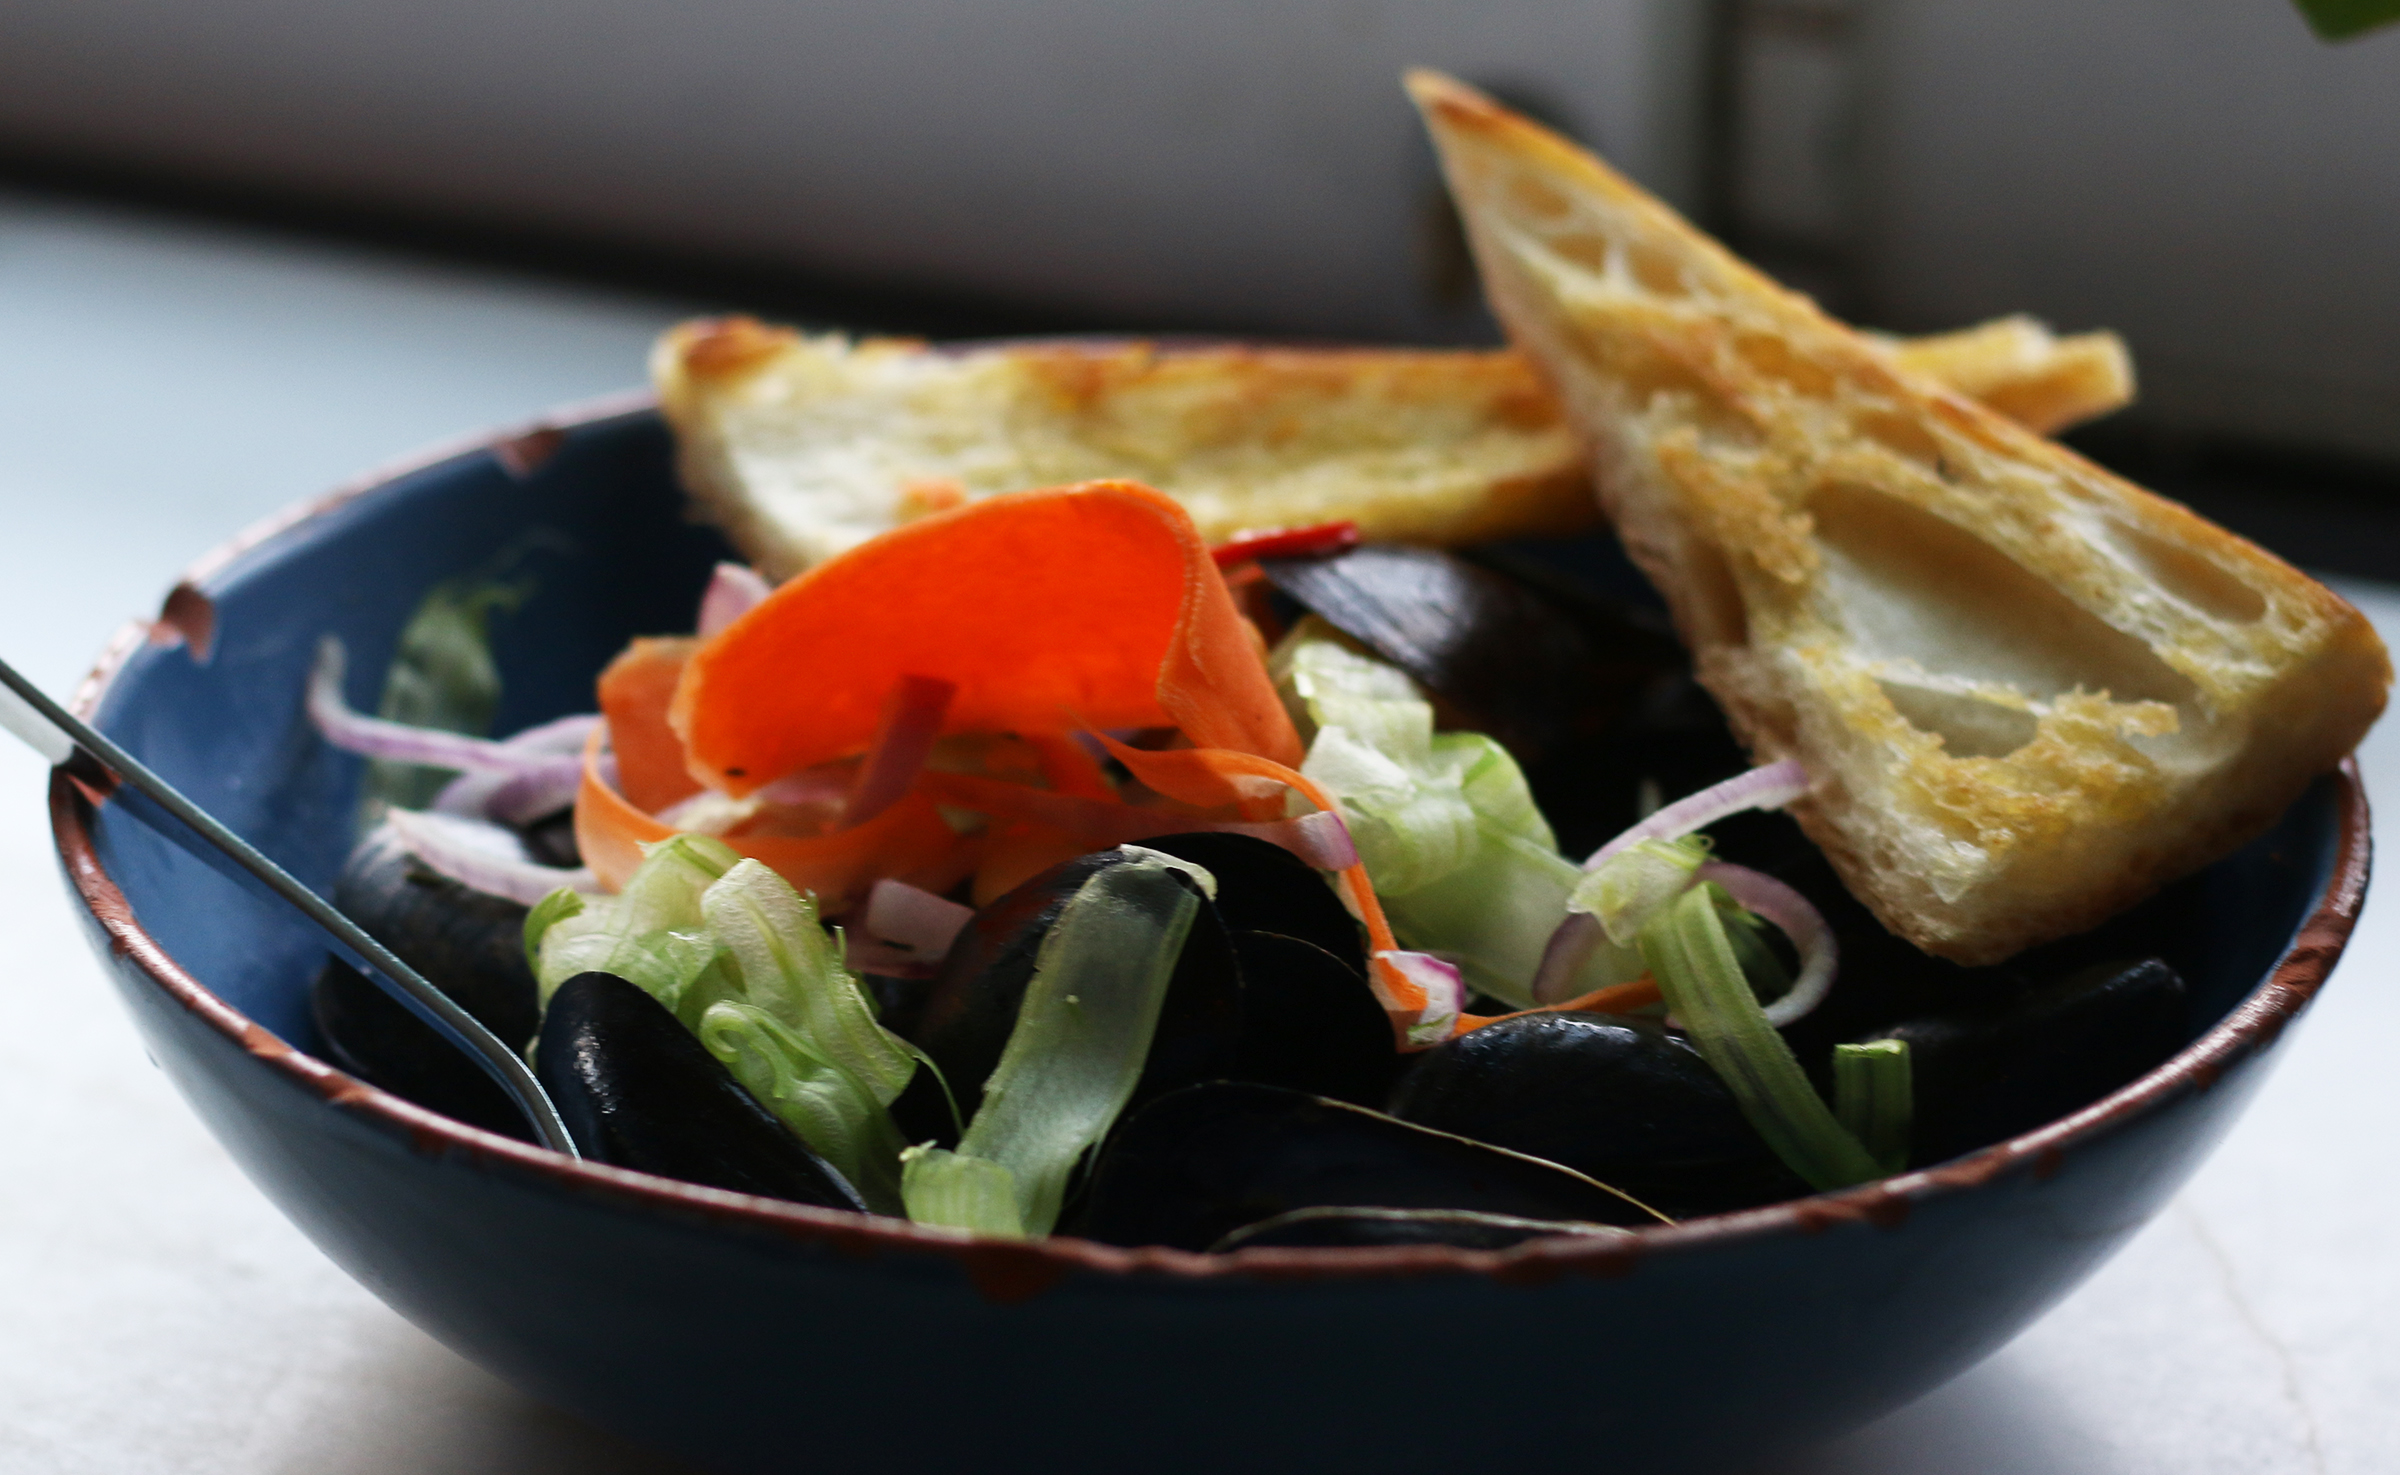 Mussels : house guanciale, serrano peppers, smoked broth & house baked bread